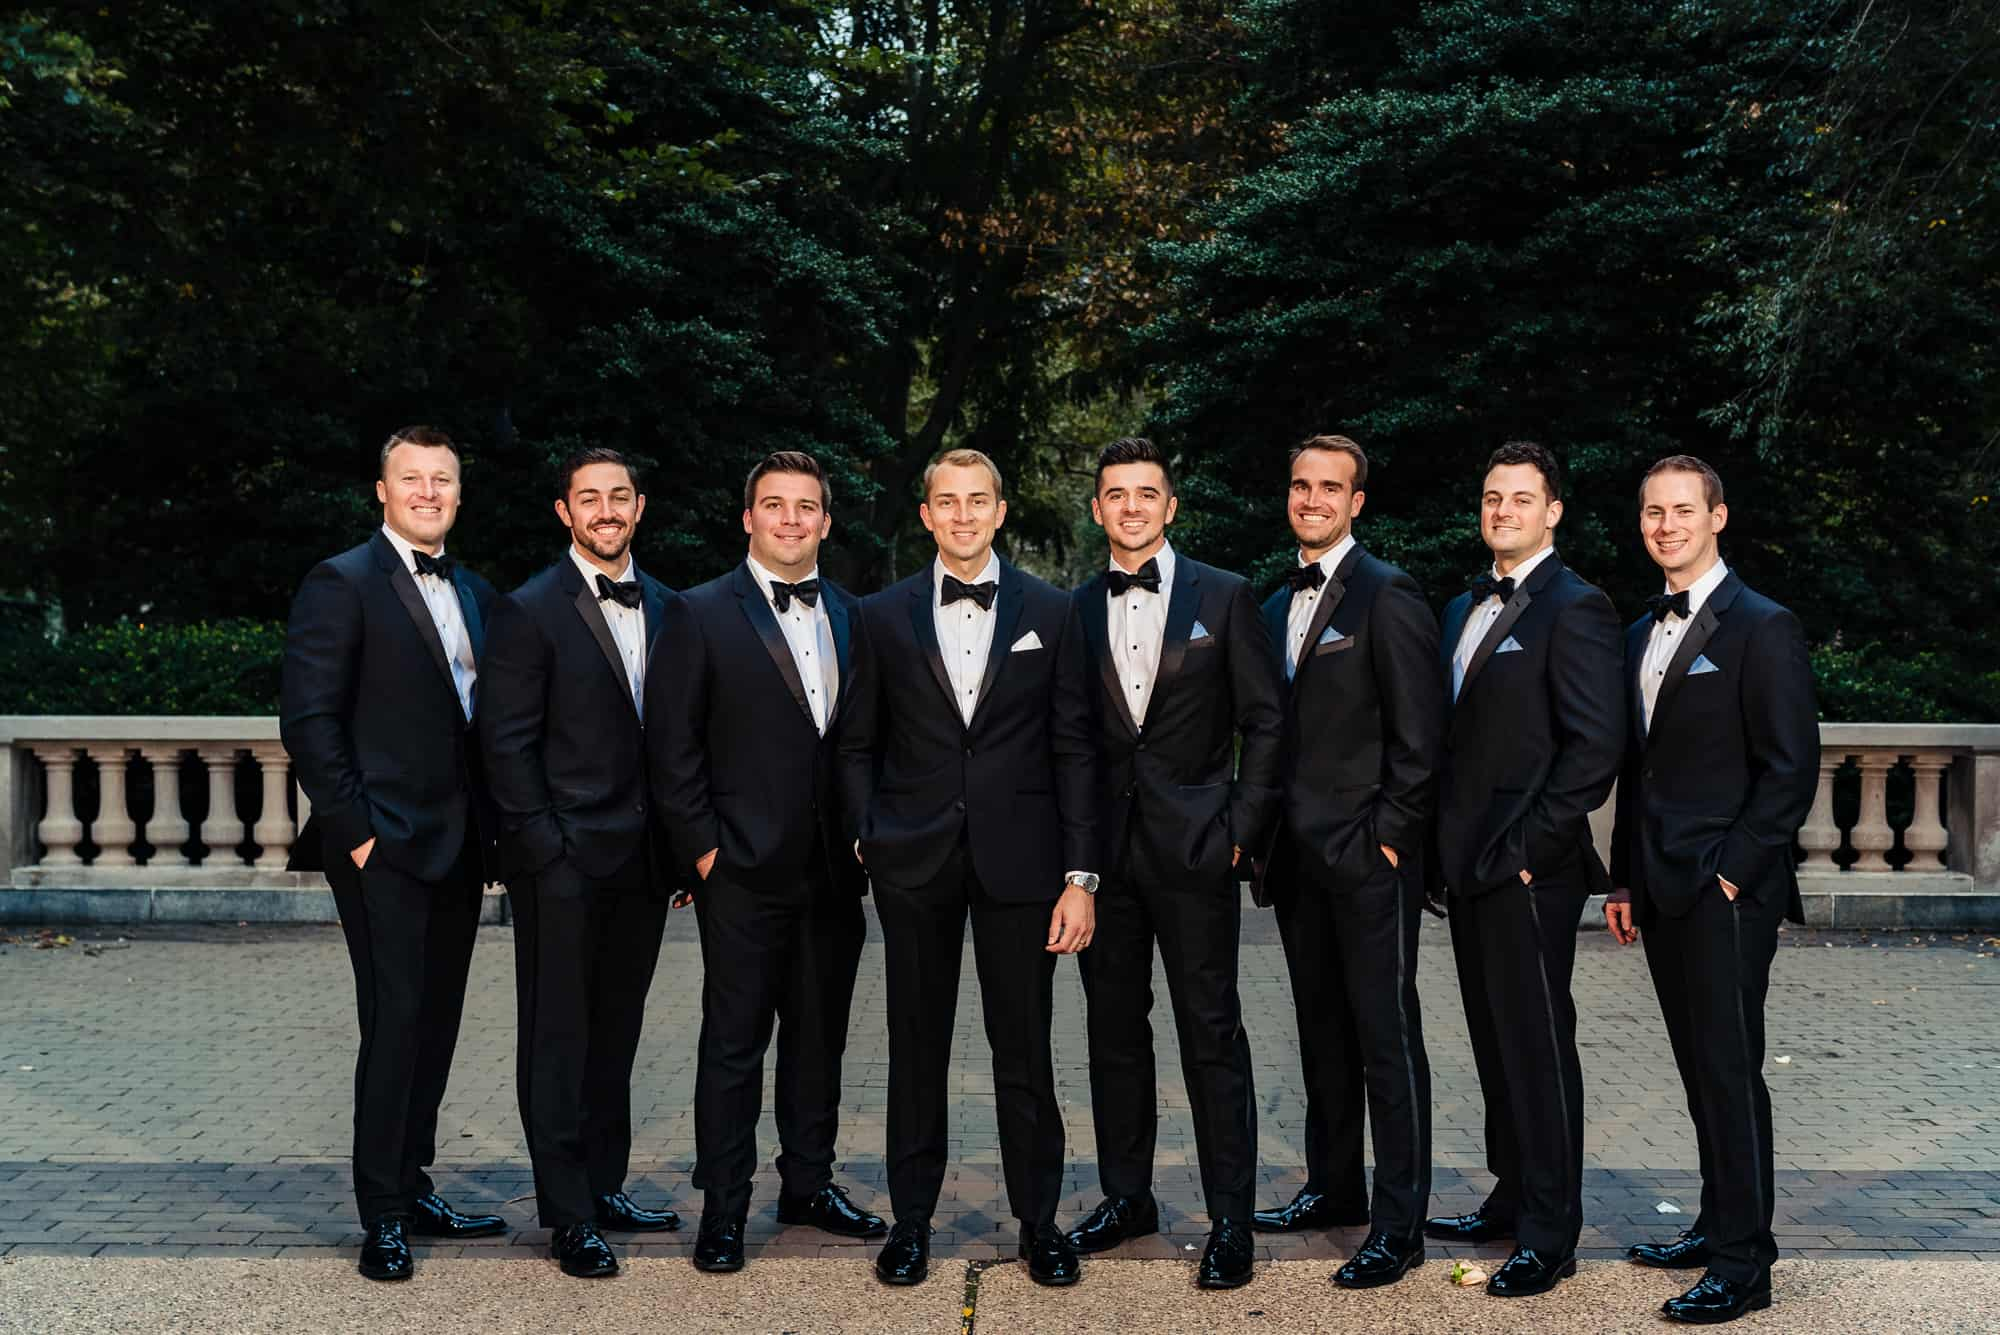 groomsman group photo in city park